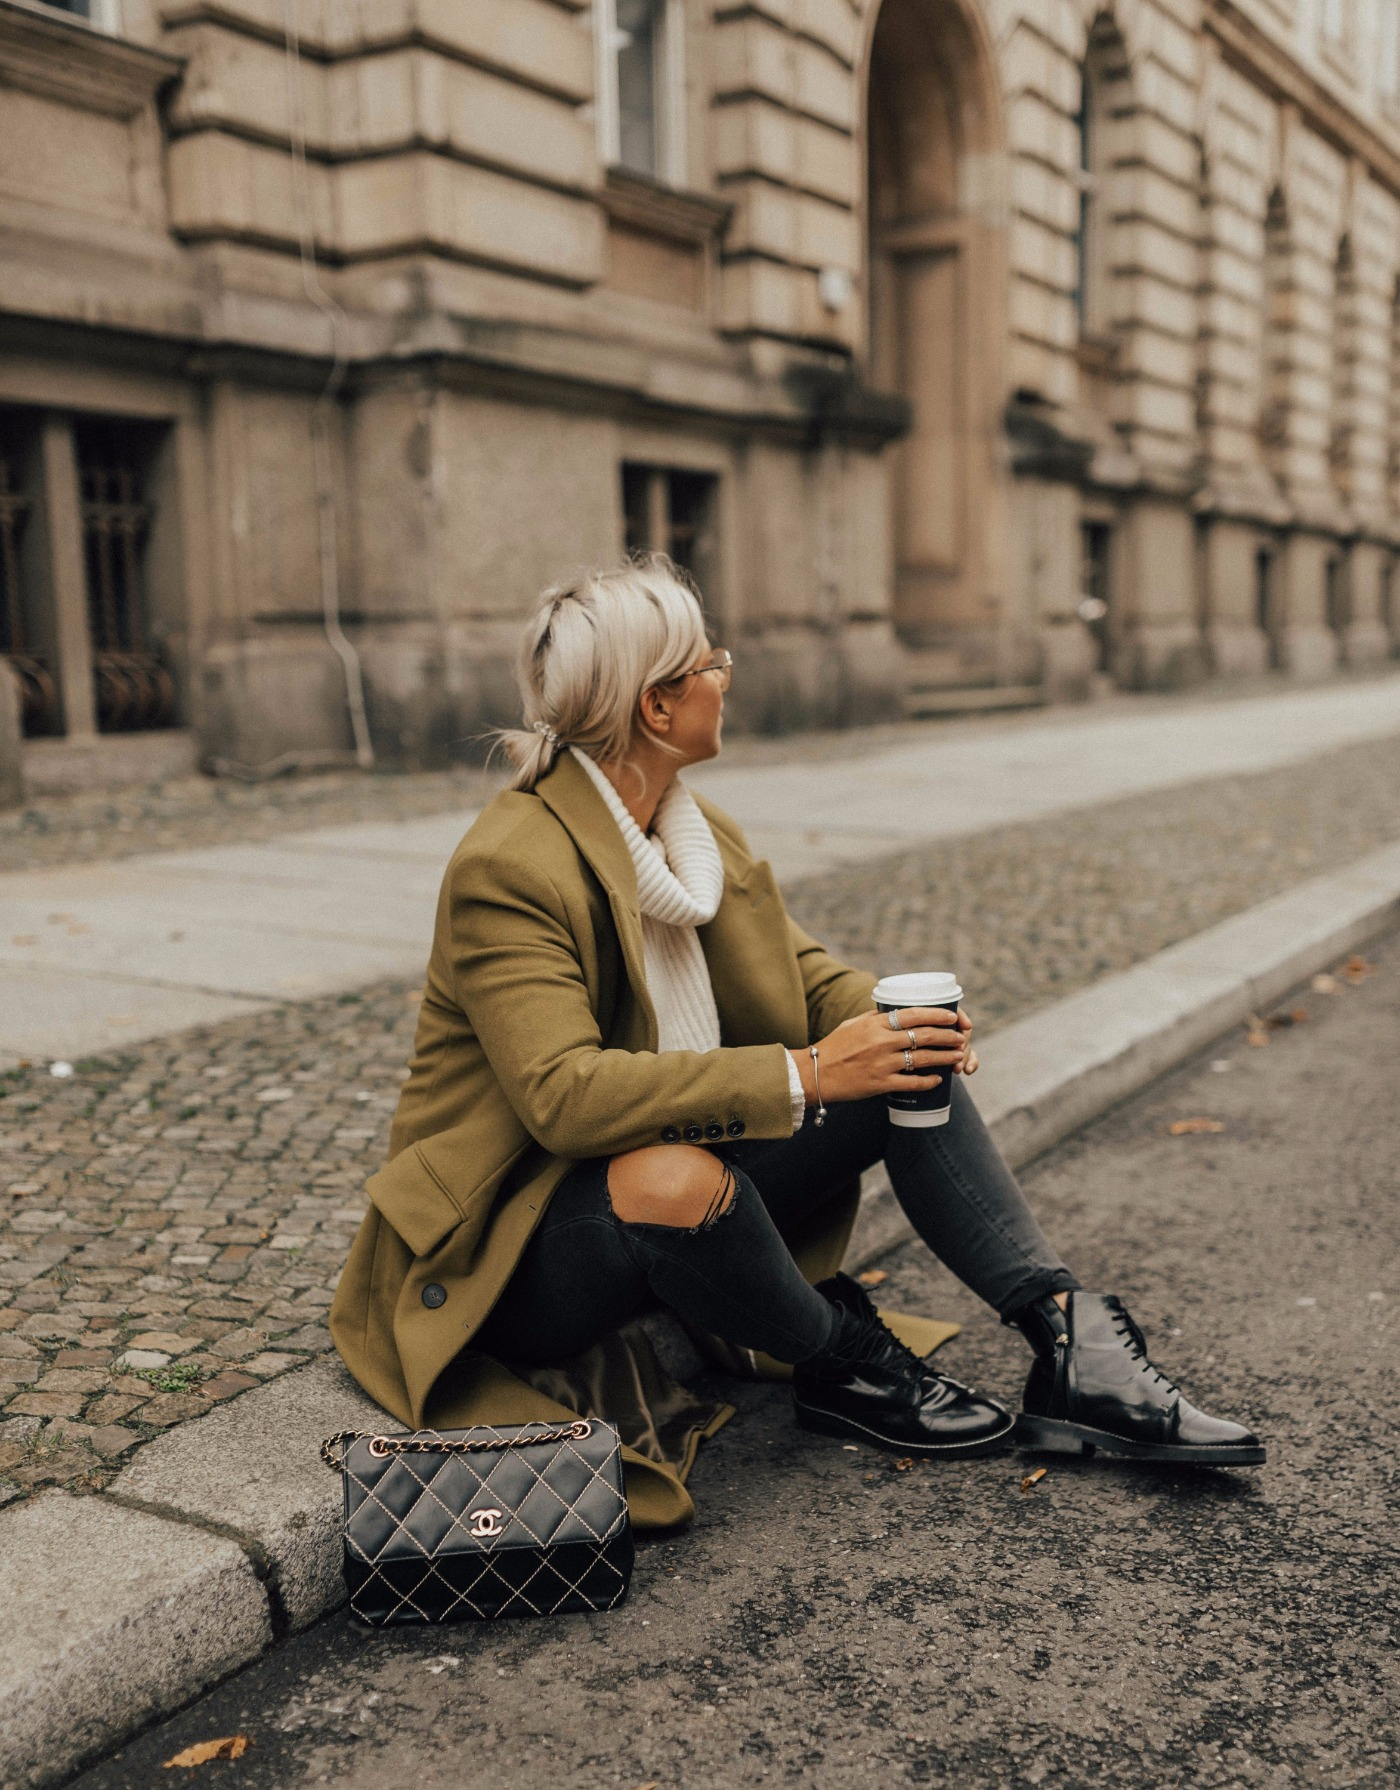 Image for [OUTFIT] Grüner Mantel, Vintage Chanel Tasche & Boots || Trendfarbe: Greenery